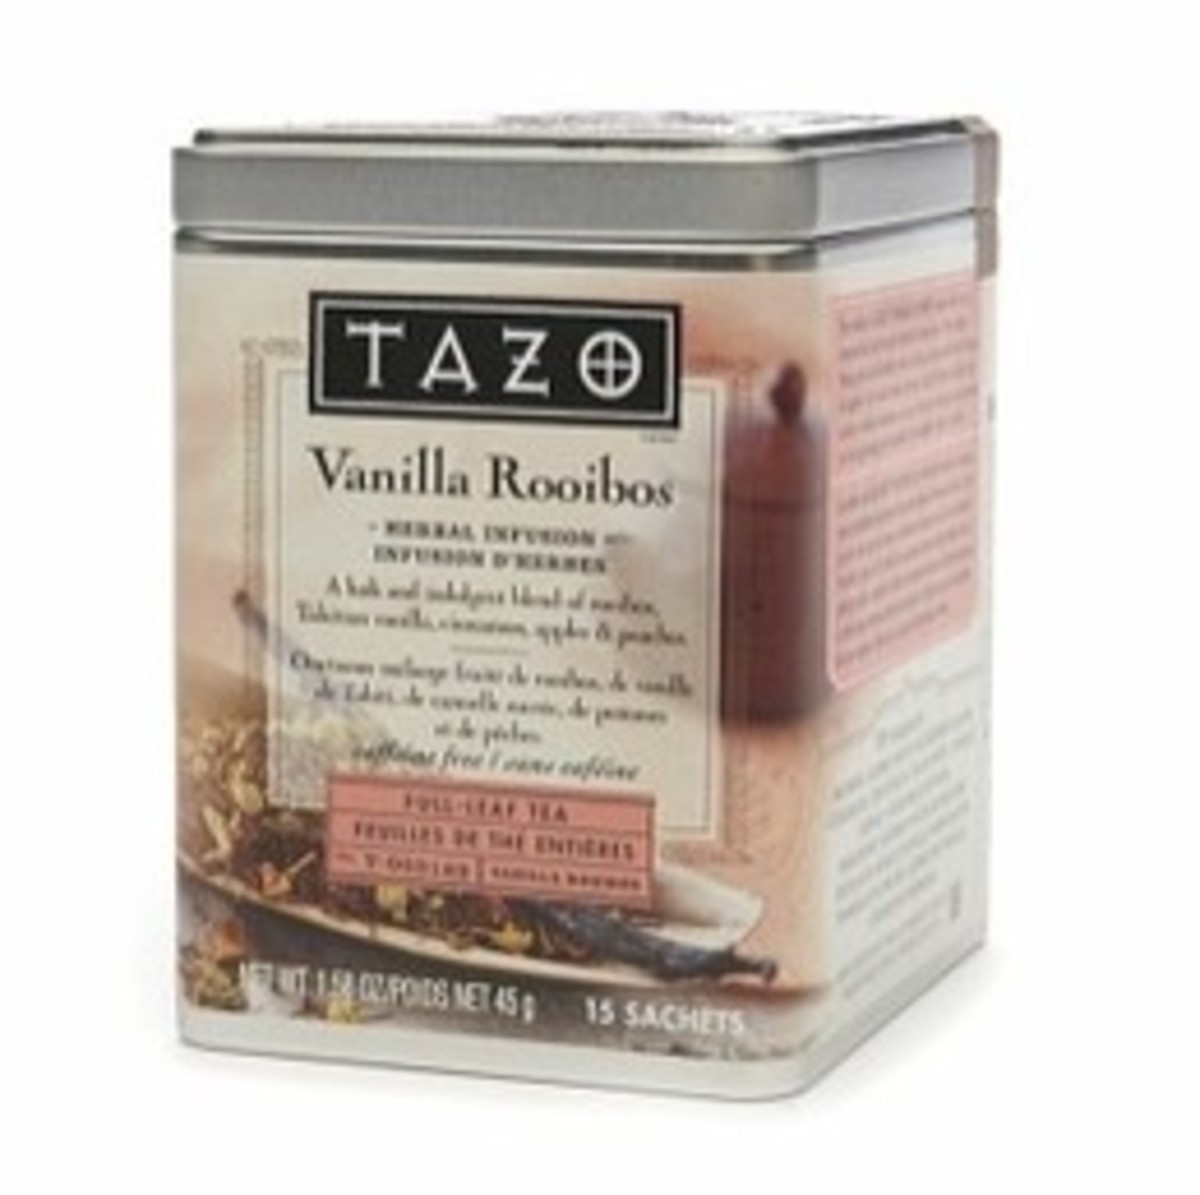 A tin of Tazo Vanilla Rooibos.